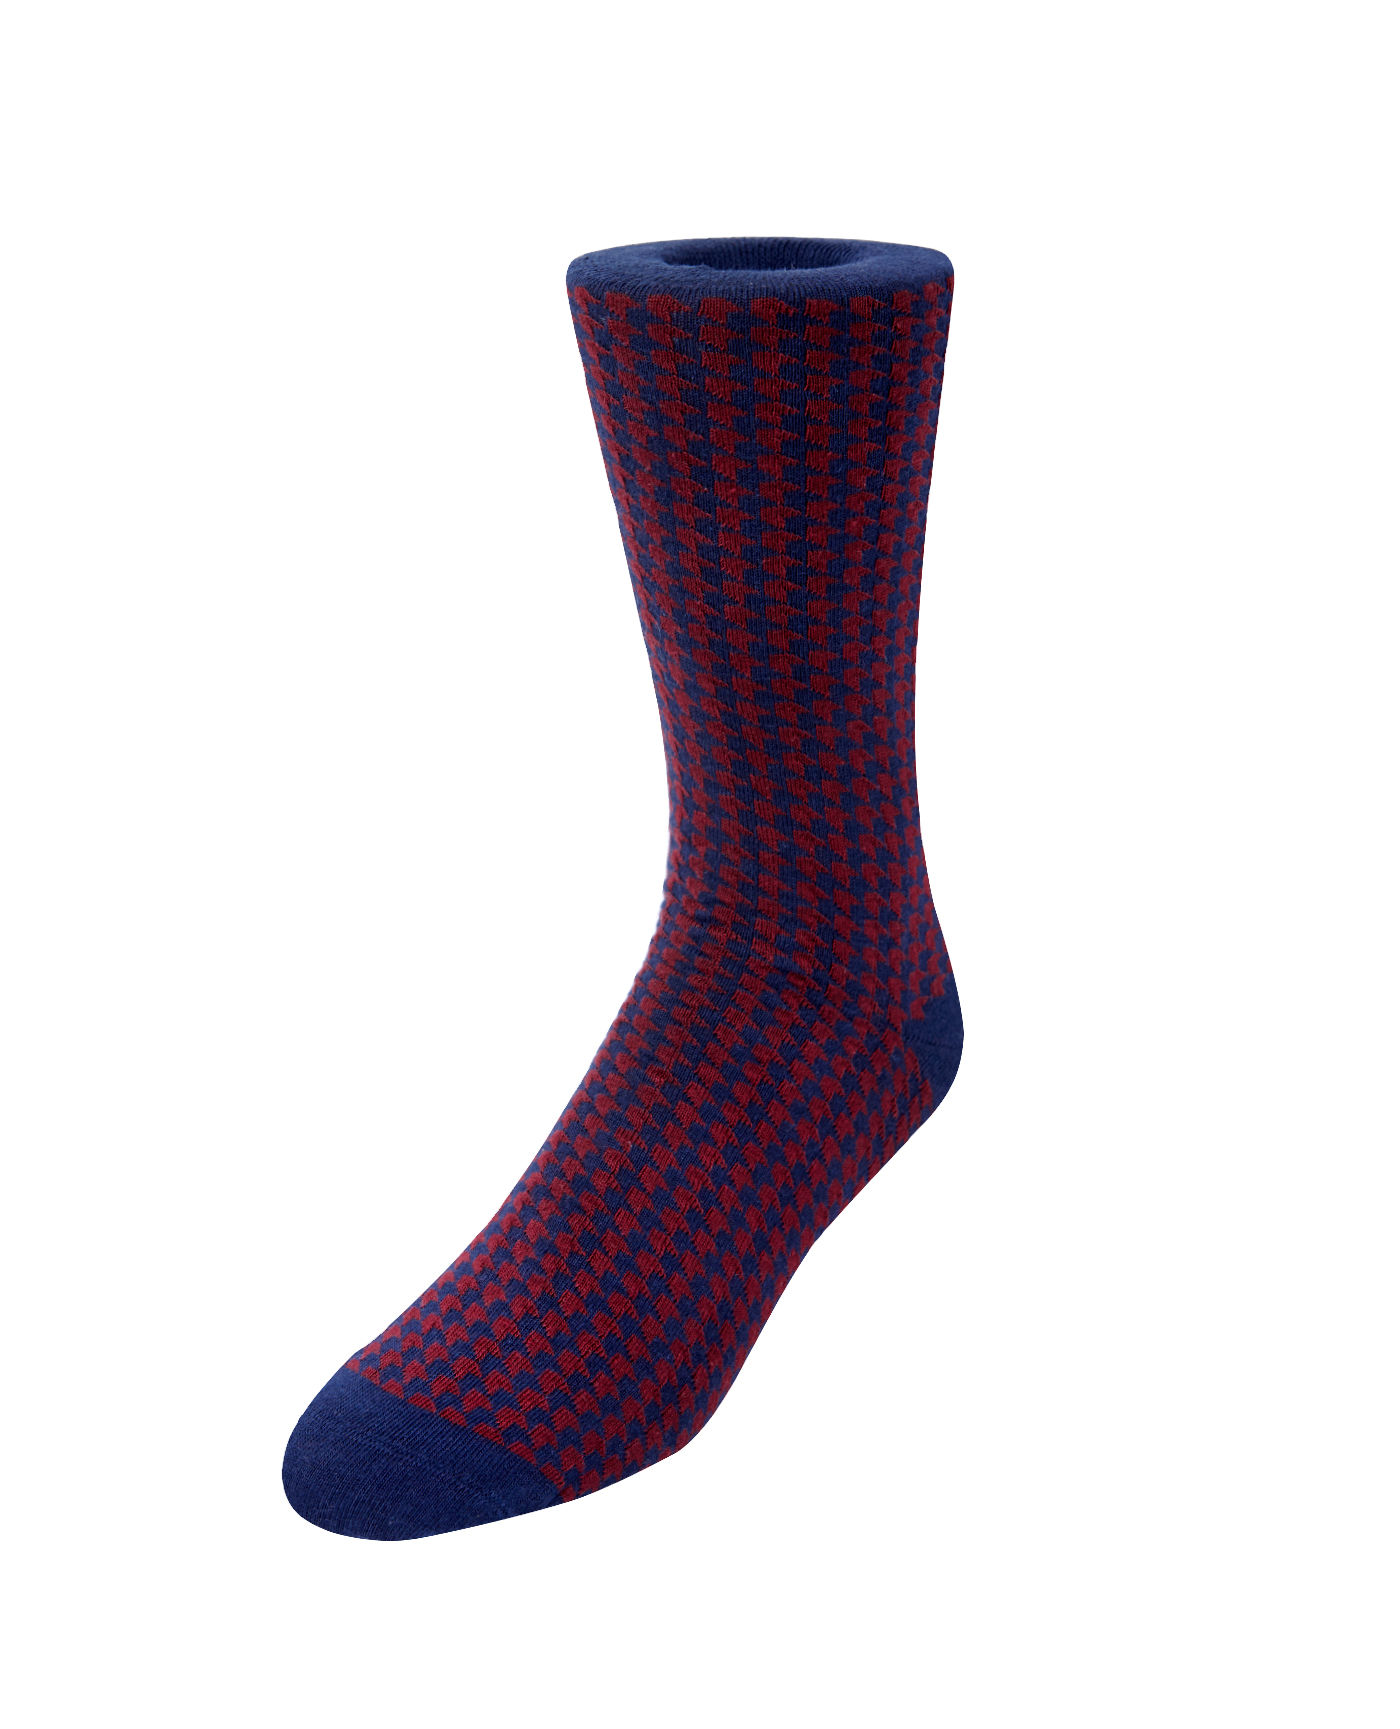 T.M.Lewin Navy Burgundy Dogtooth Handlinked Socks